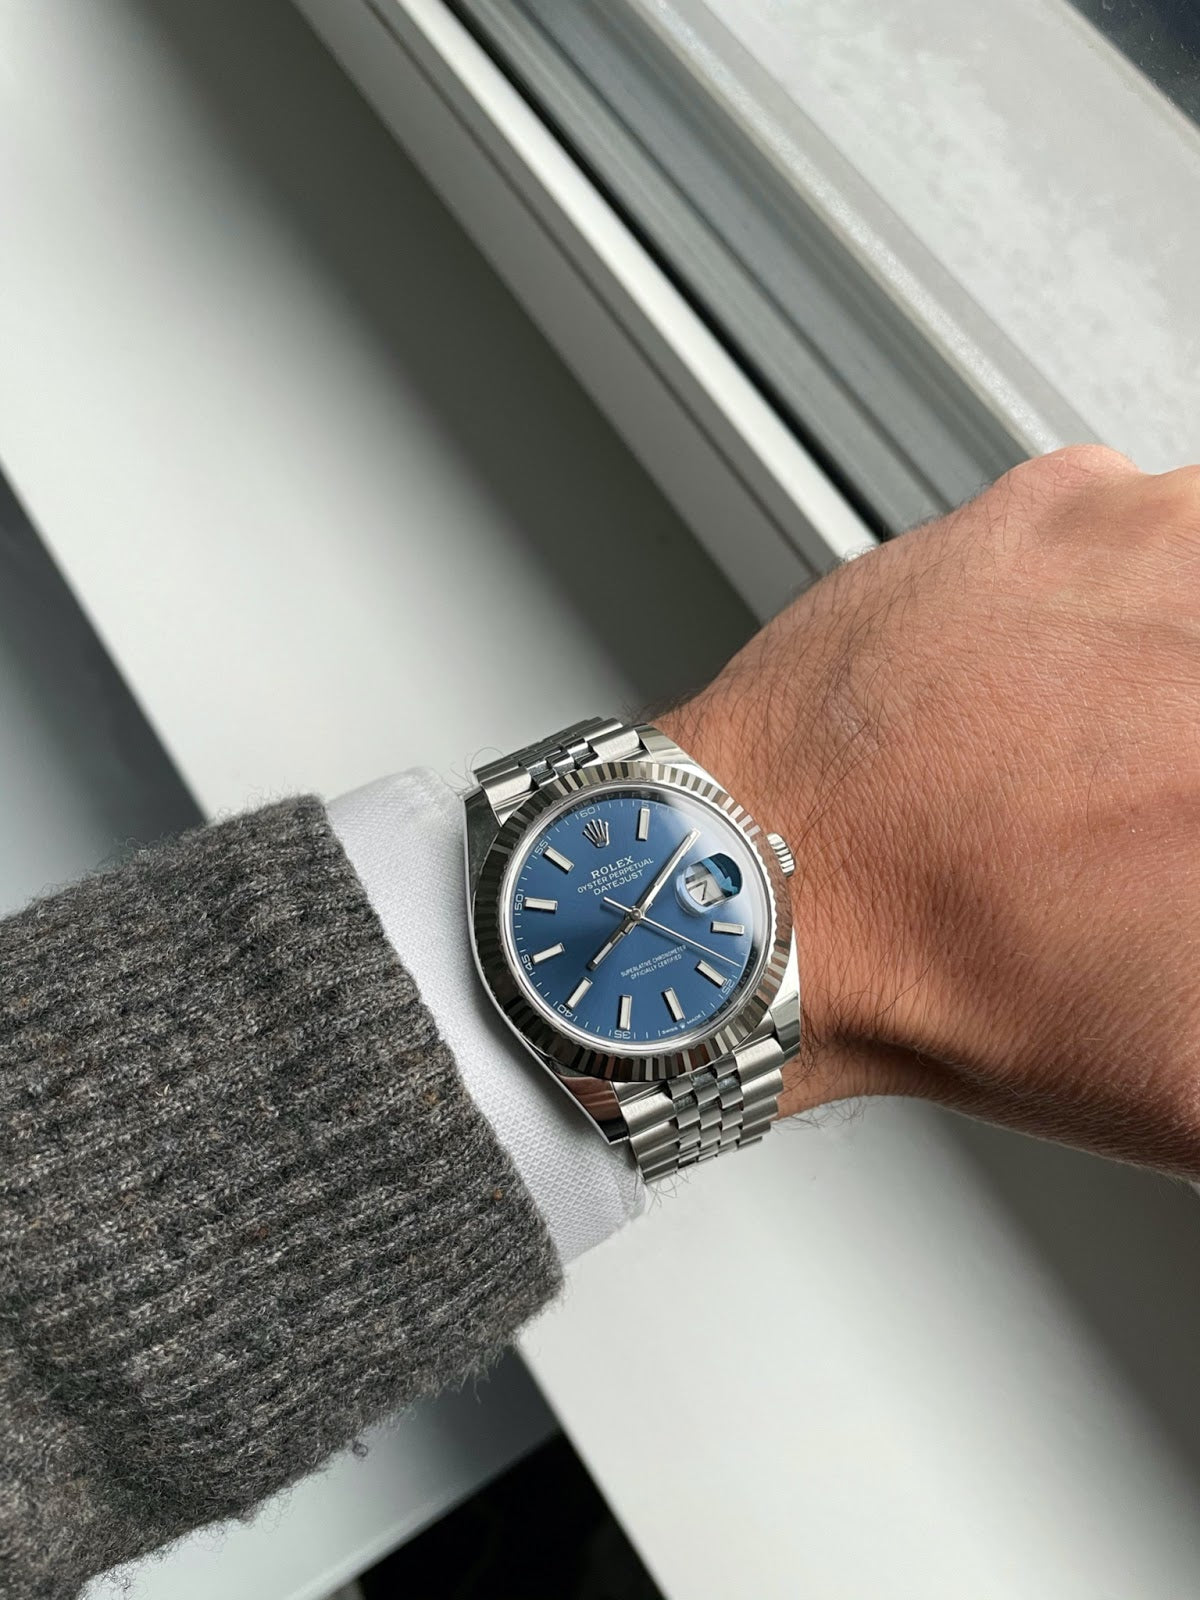 rolex datejust on with blue dial on wrist